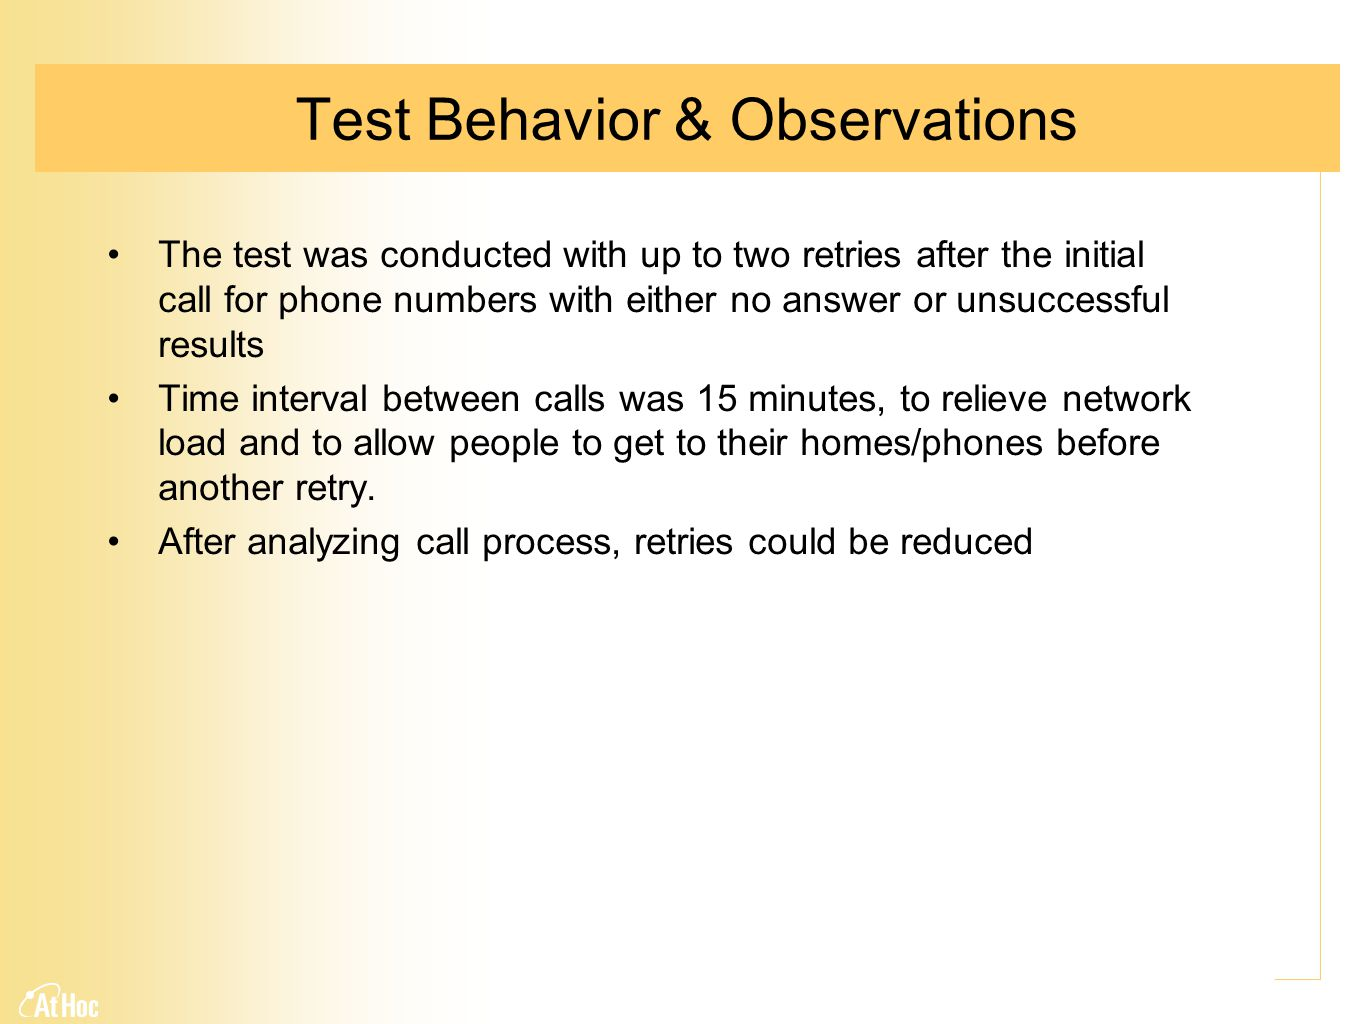 Test Behavior & Observations The test was conducted with up to two retries after the initial call for phone numbers with either no answer or unsuccessful results Time interval between calls was 15 minutes, to relieve network load and to allow people to get to their homes/phones before another retry.